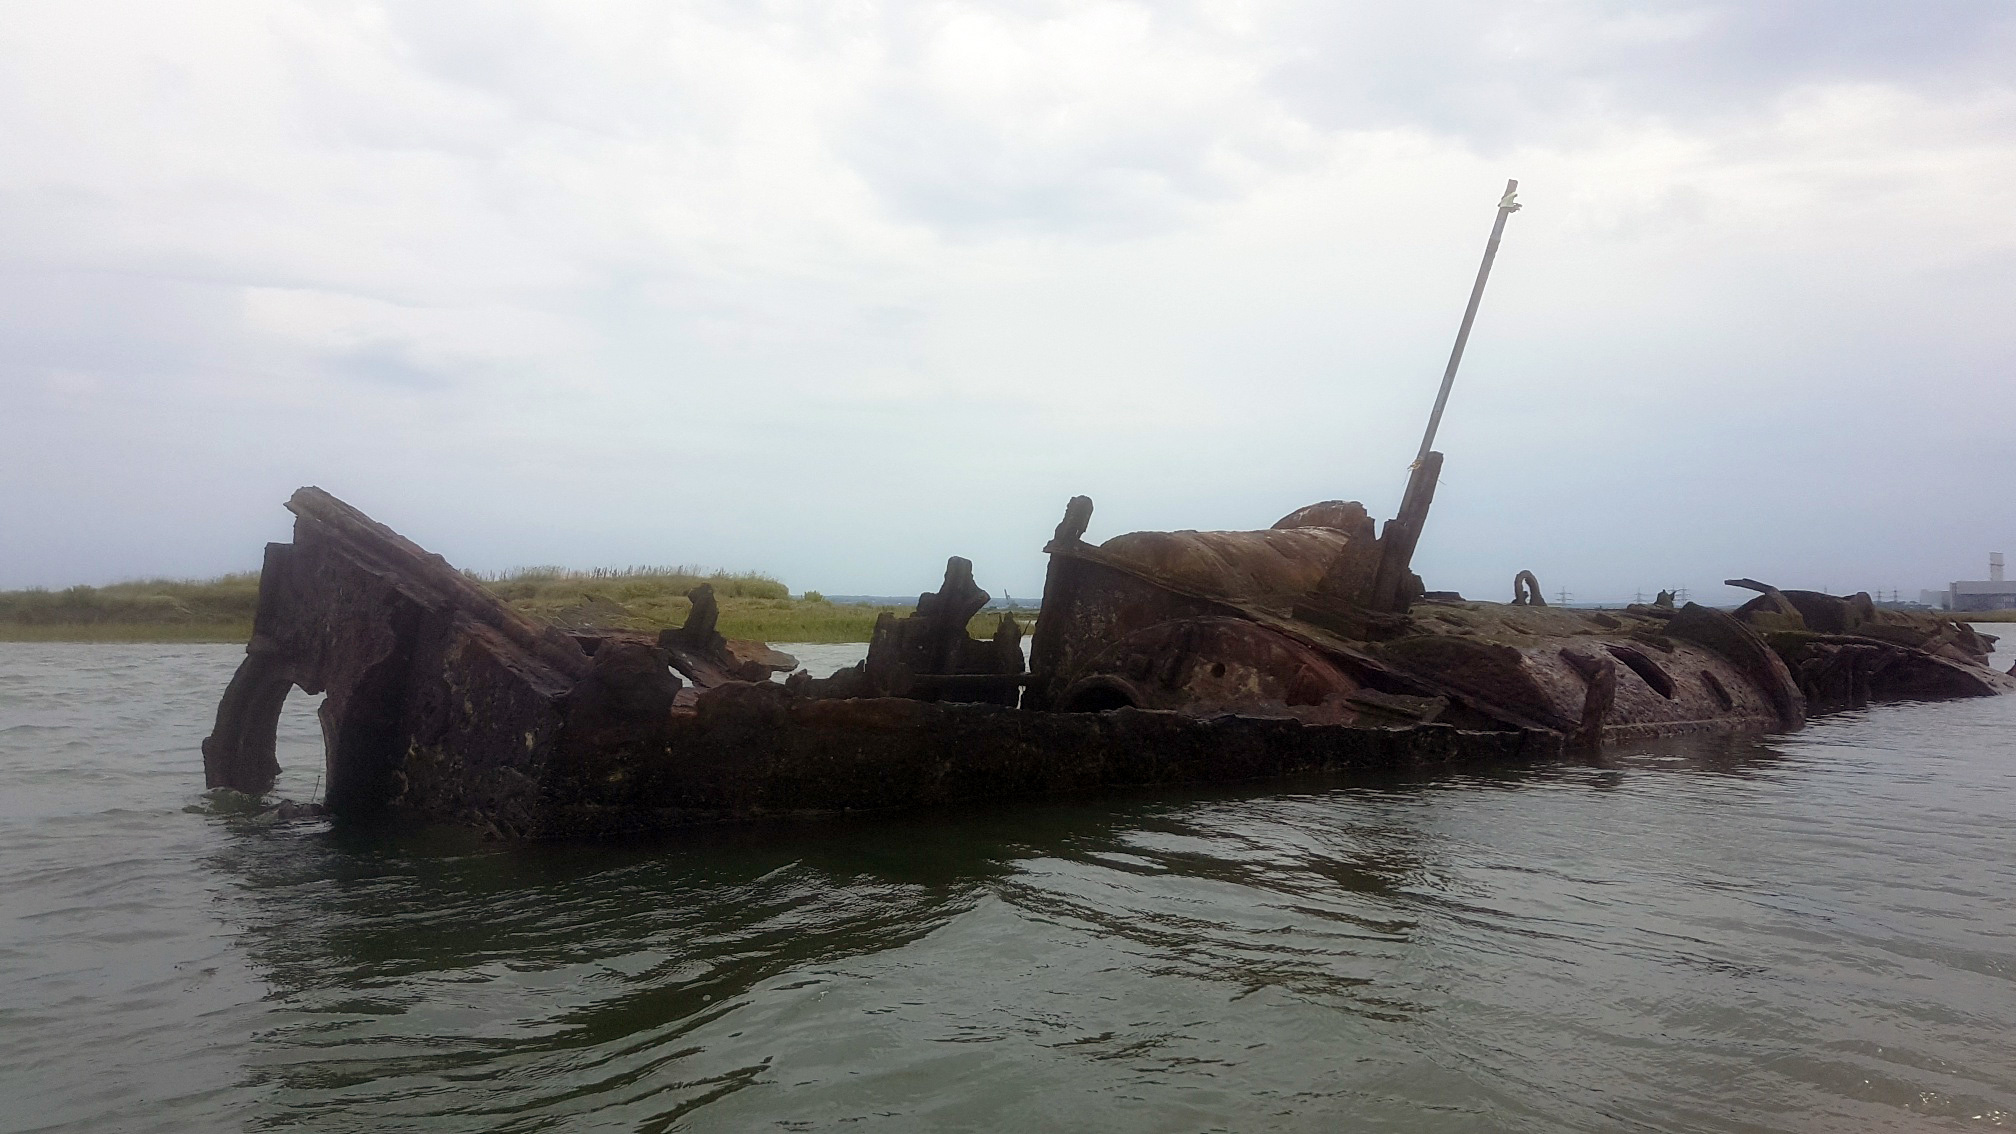 The wreck of German U-boat UB122, a submarine found in the River Medway estuary.